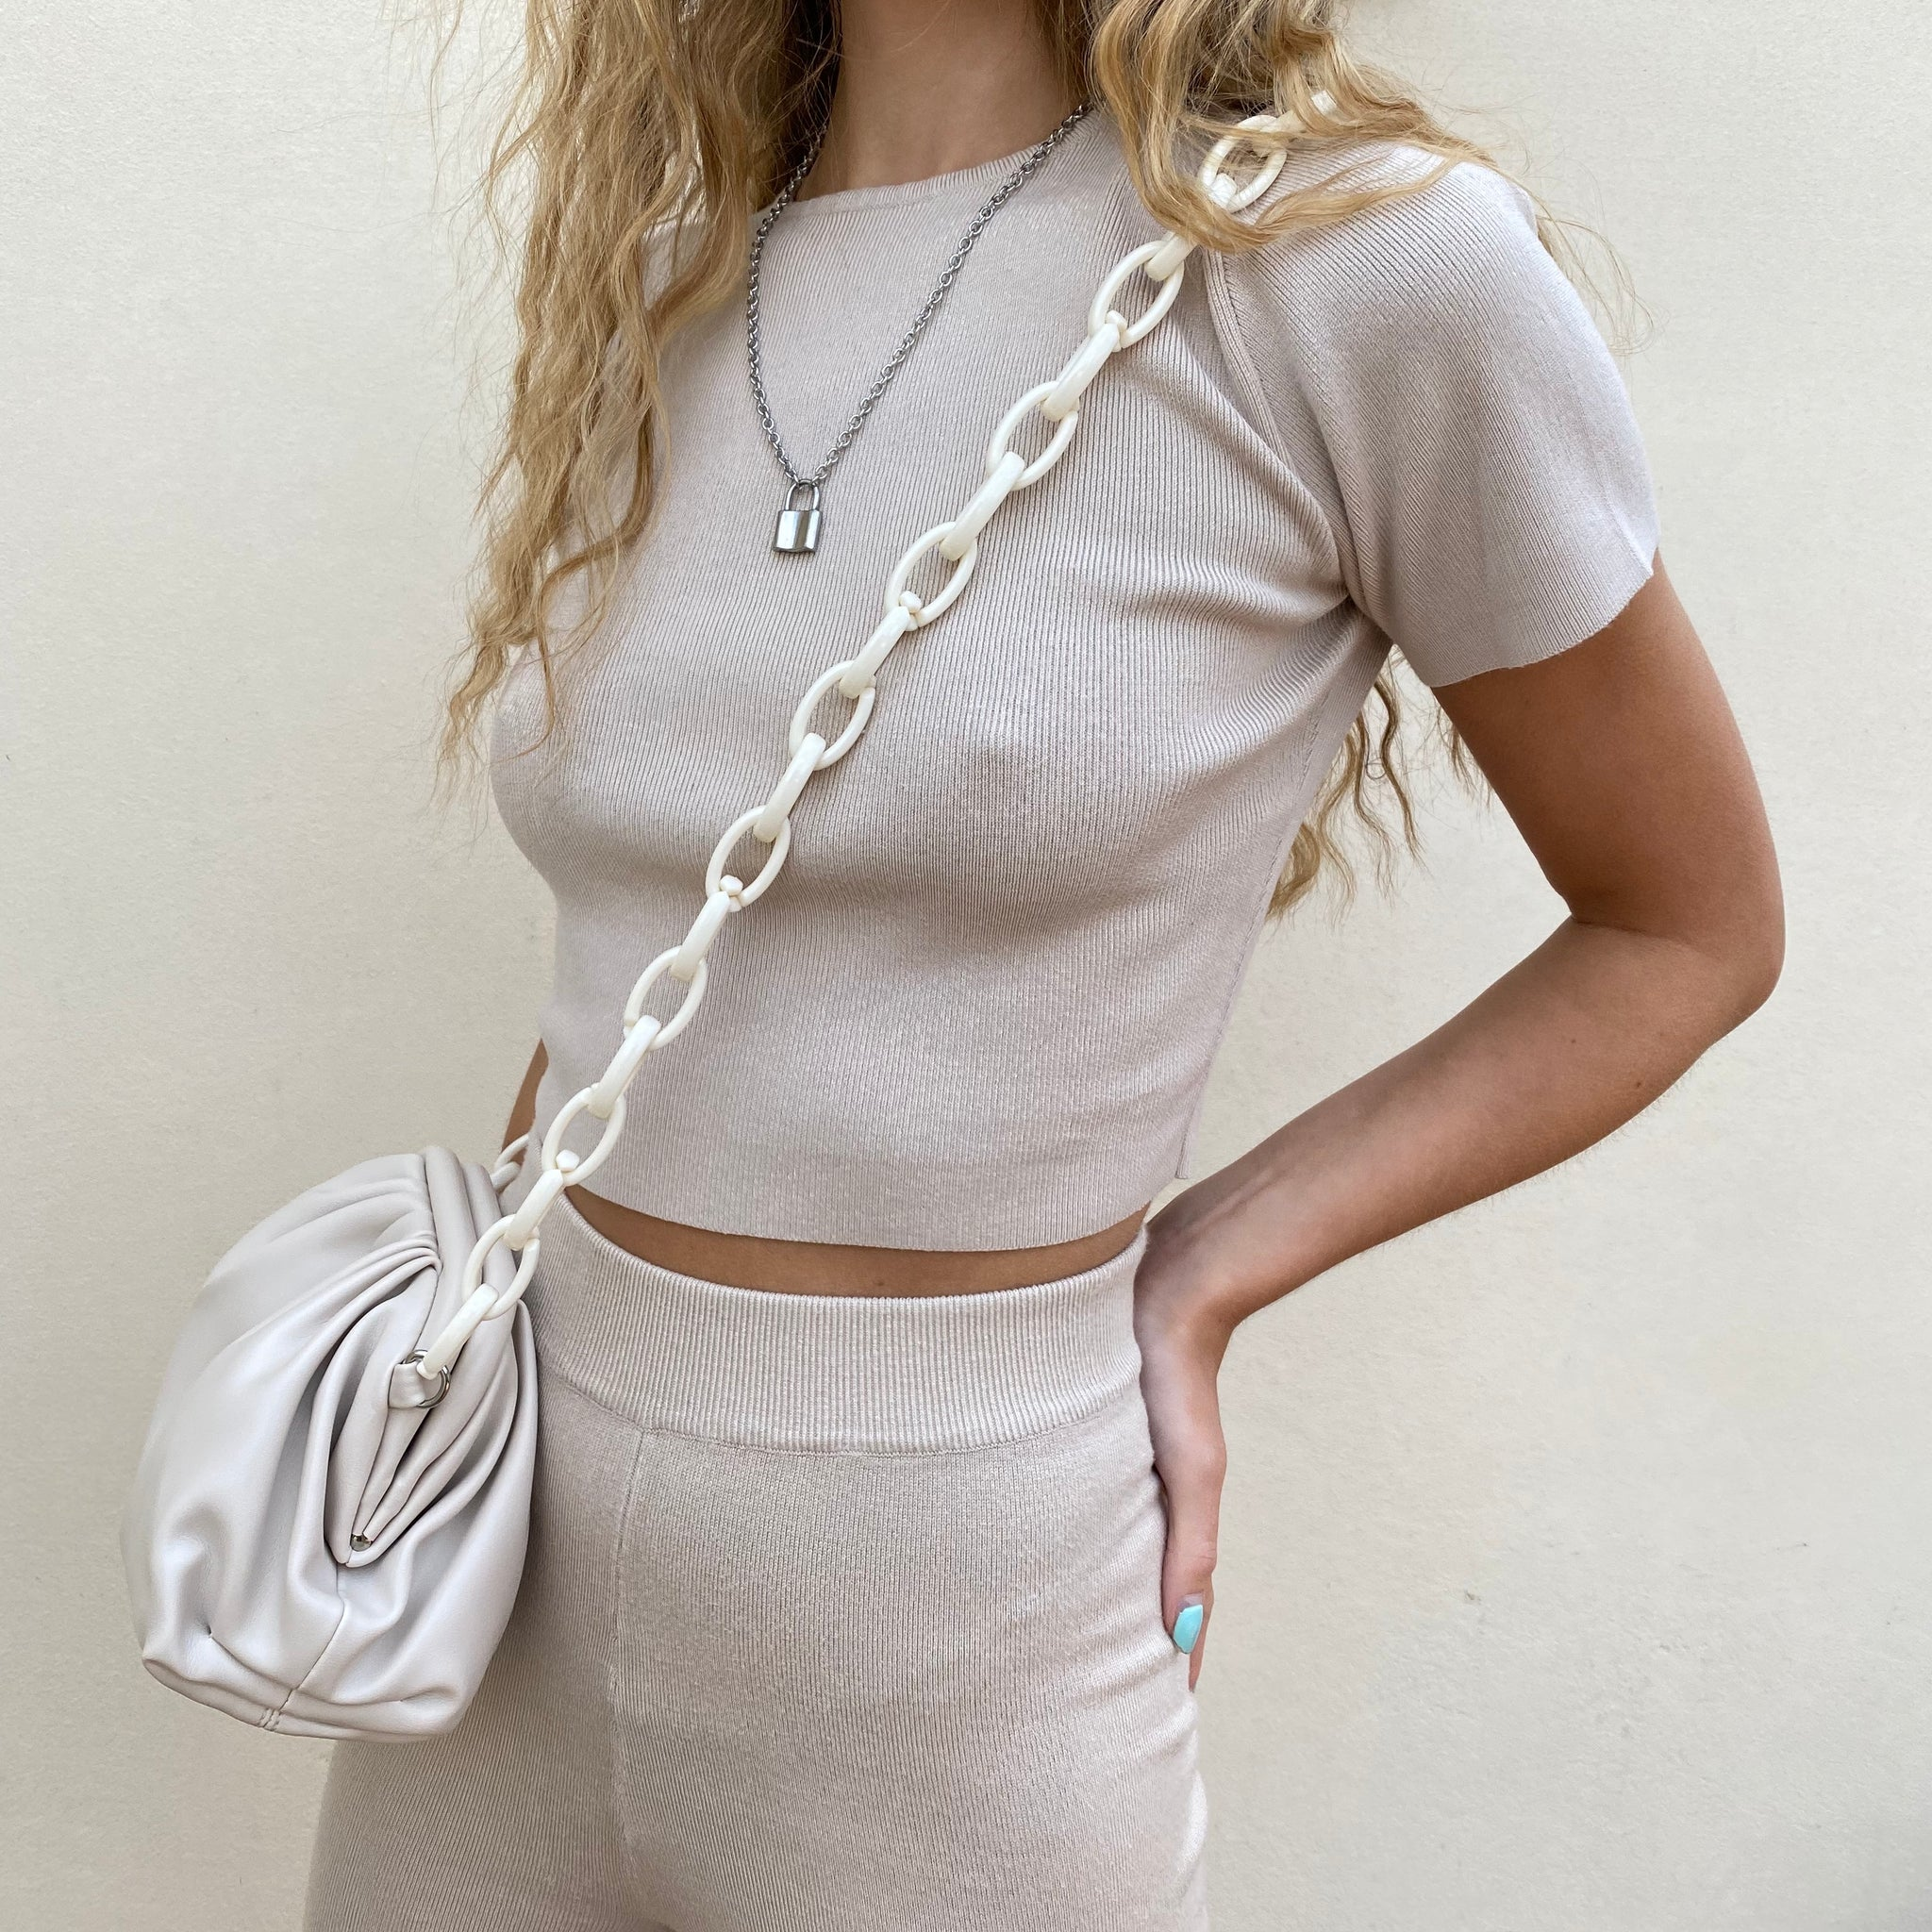 Padlock Chain - FLXNfashion